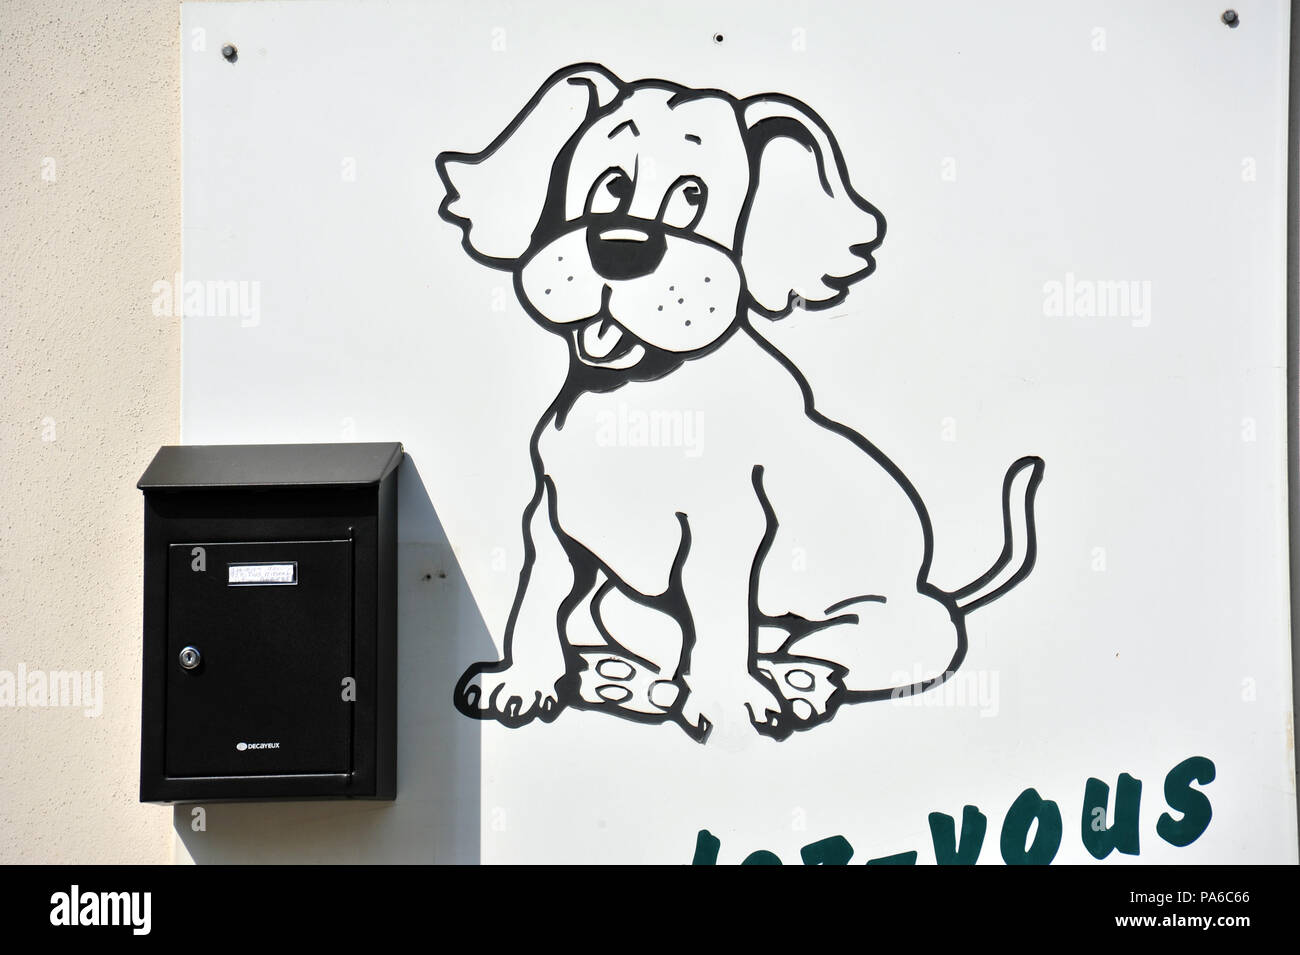 Canine grooming immagini & canine grooming fotos stock alamy